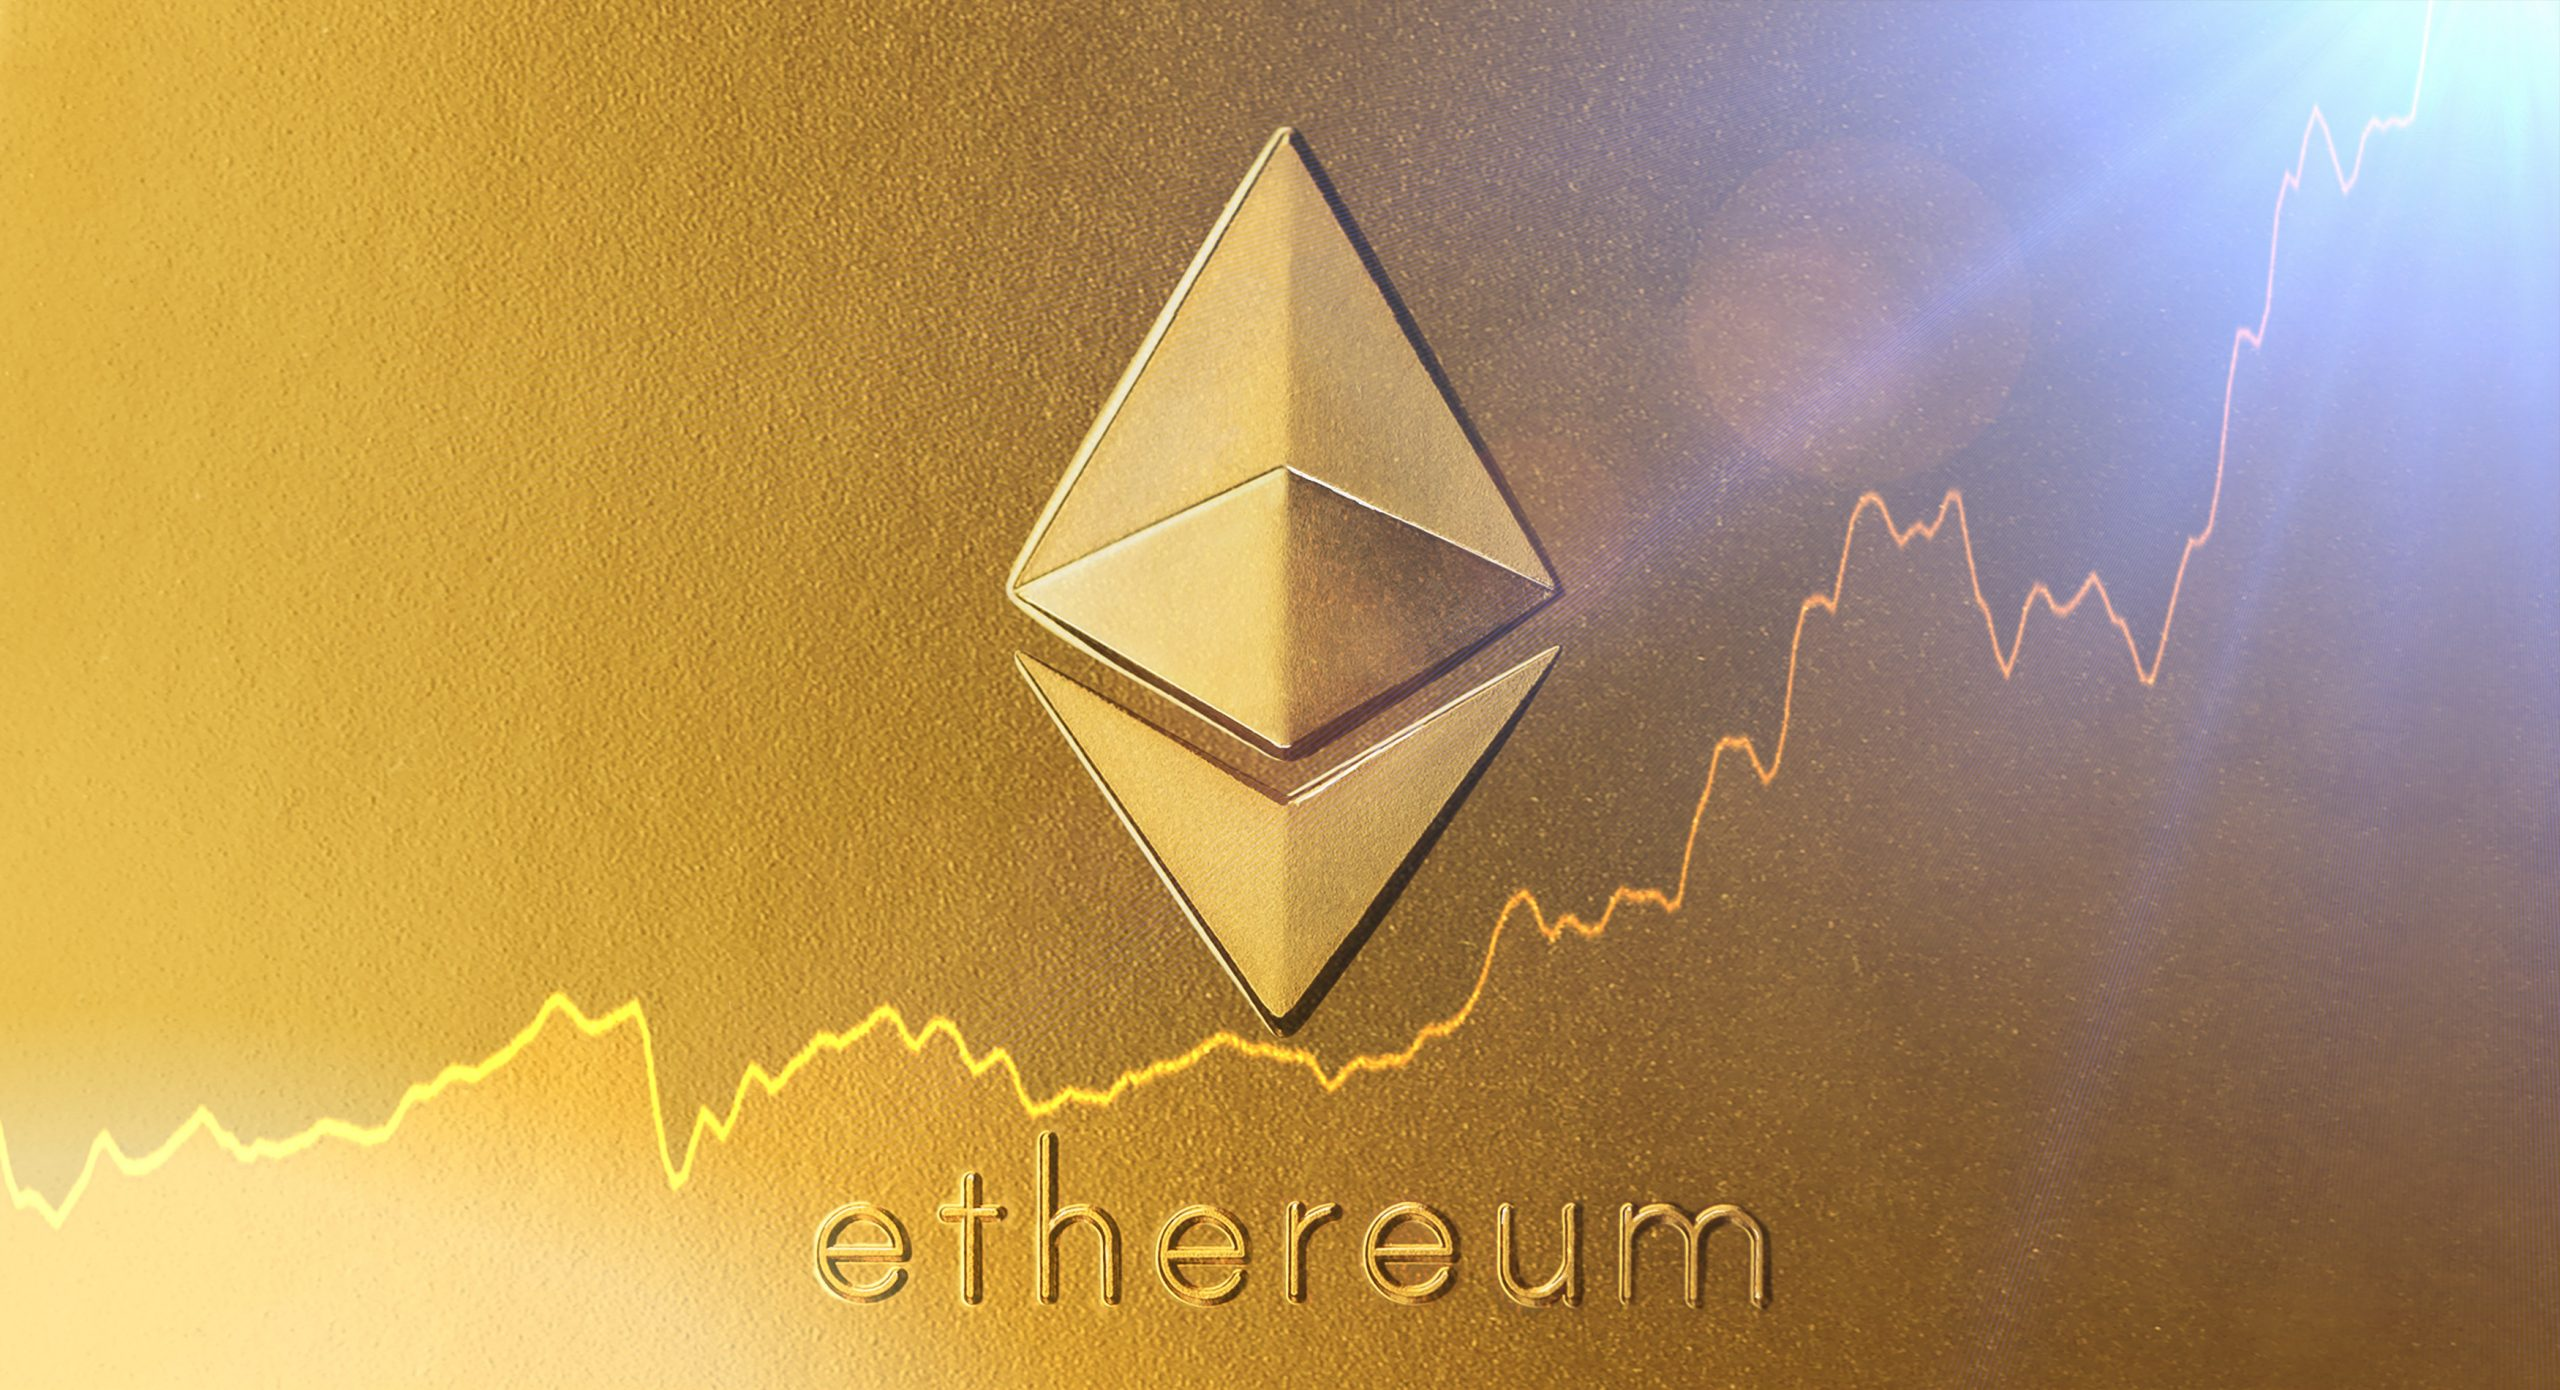 Ethereum value could be higher than ounce of gold